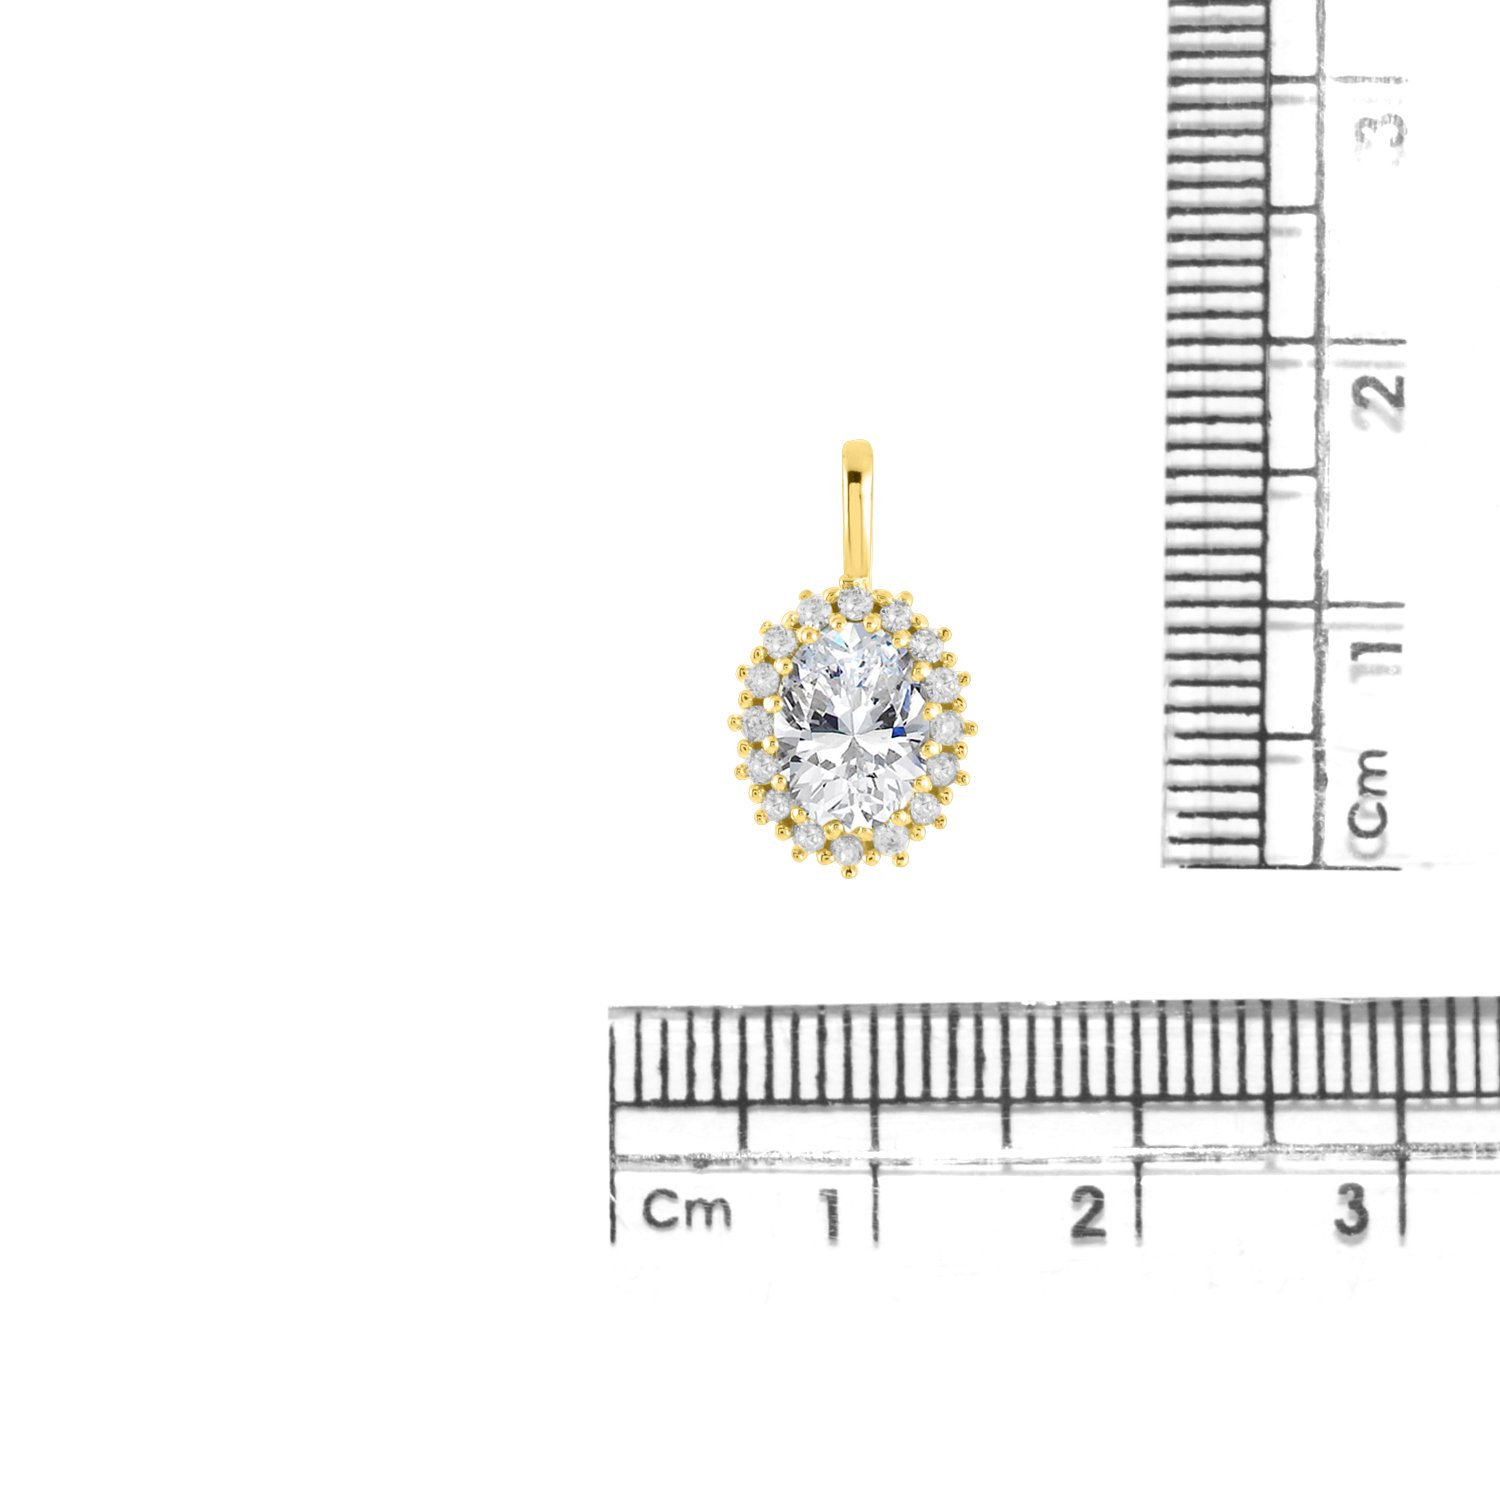 DiscountHouse4you 0.24 Ct White Cubic Zirconia Oval Frame Halo Pendant Necklace in 14k White Gold Over